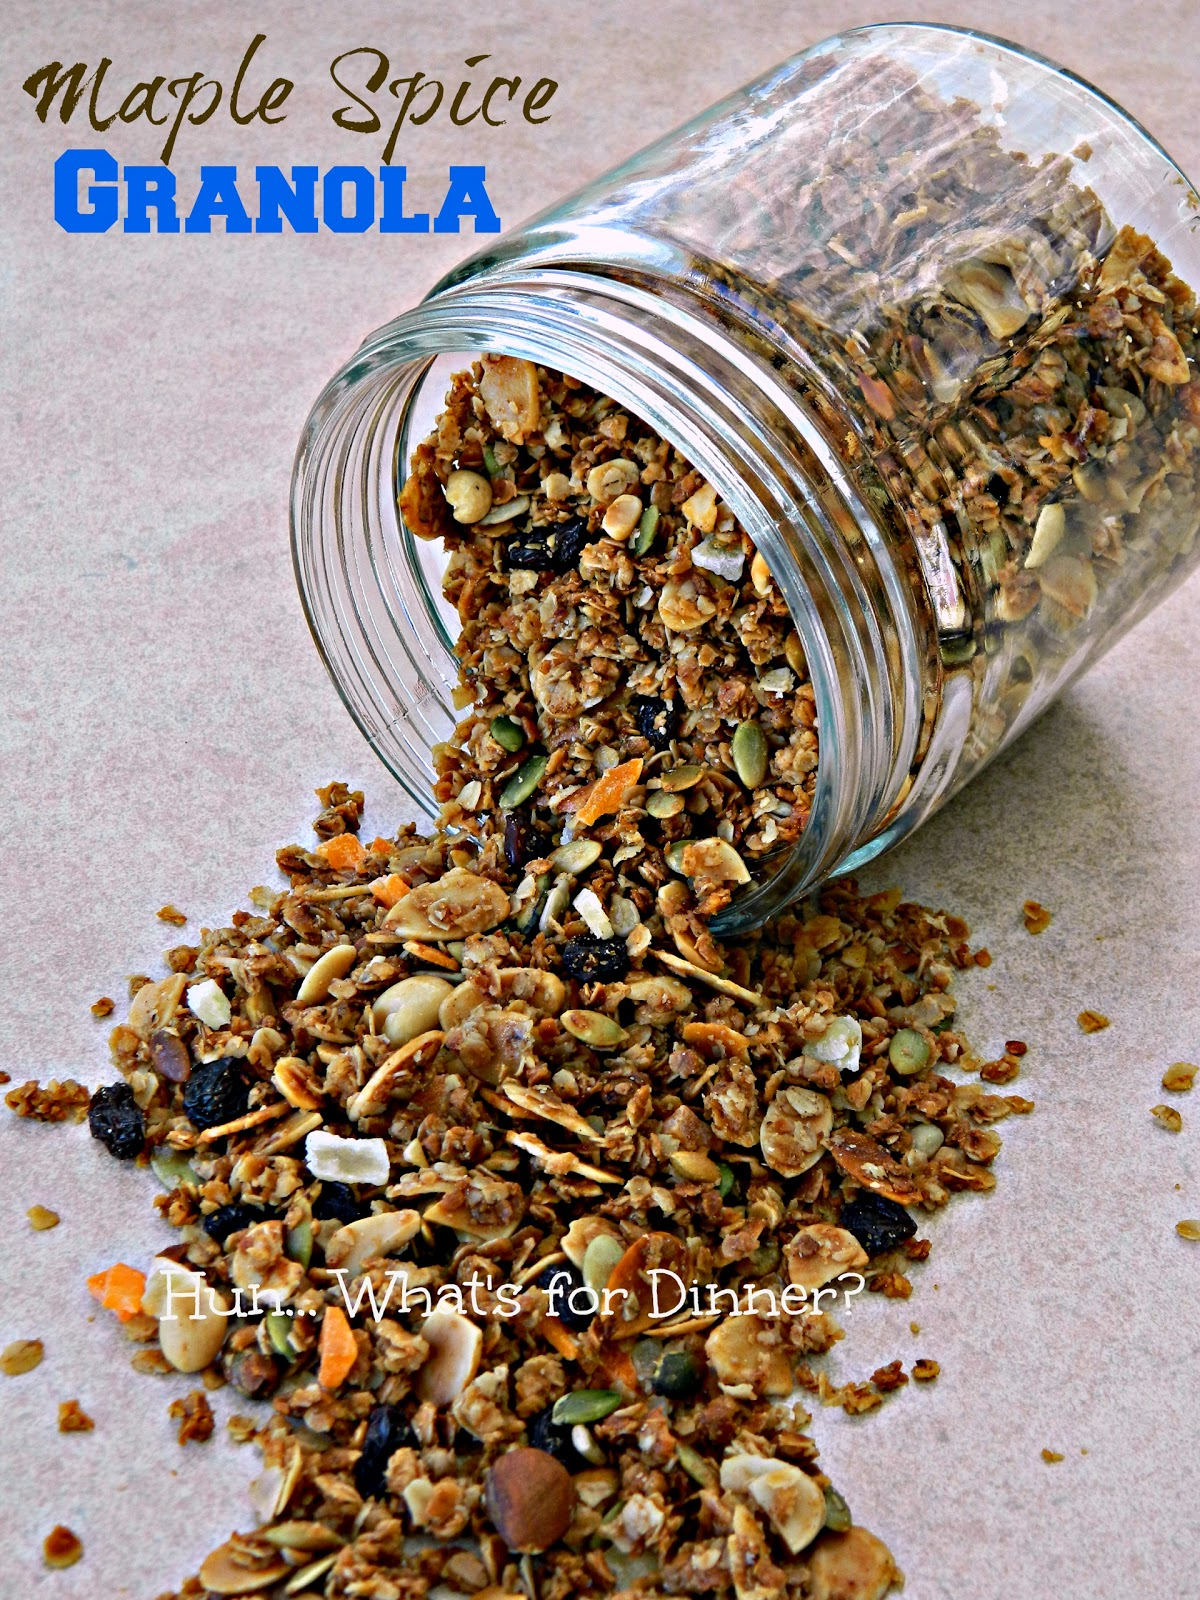 Maple Spice Granola- Oats become deliciously crunchy when baked in a mixture of maple syrup, spices, dried fruit and nuts.